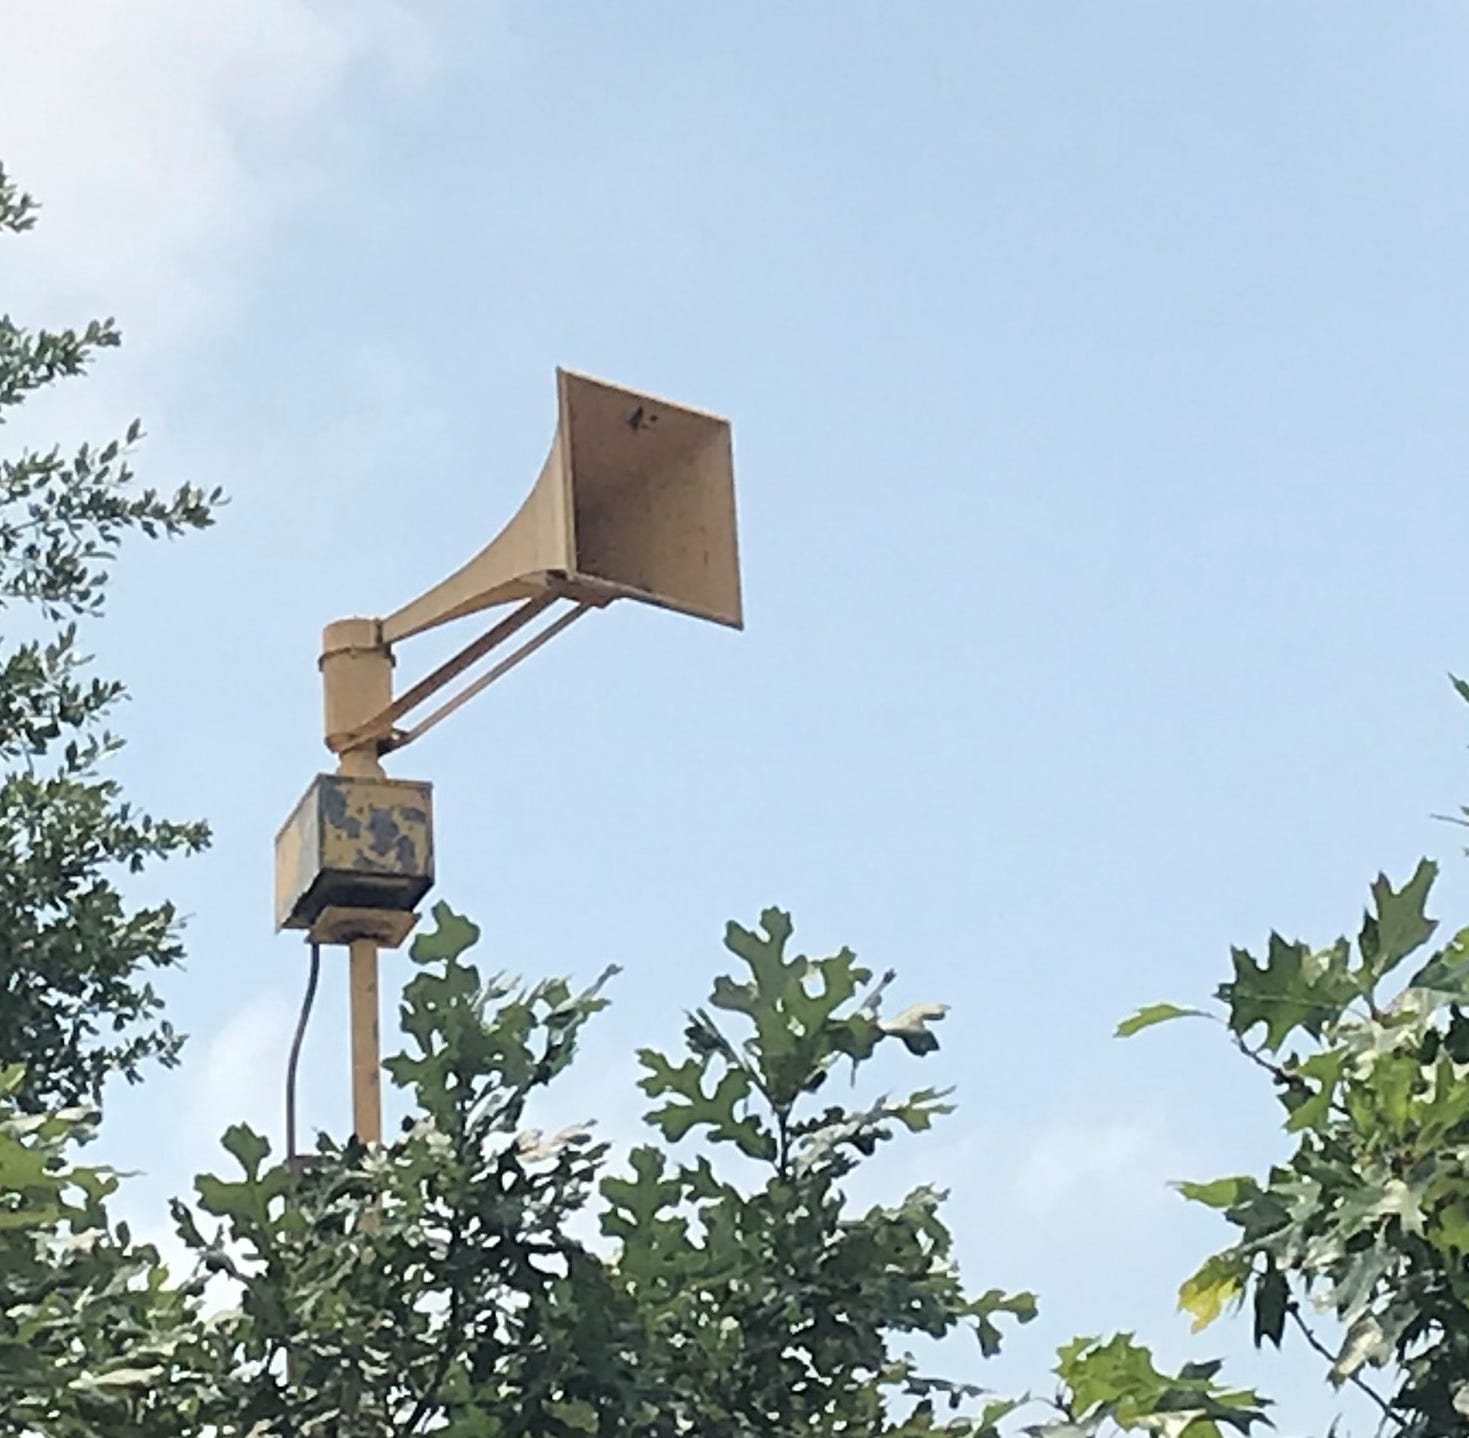 Voices in online petition growing louder, calling for return of San Angelo warning sirens